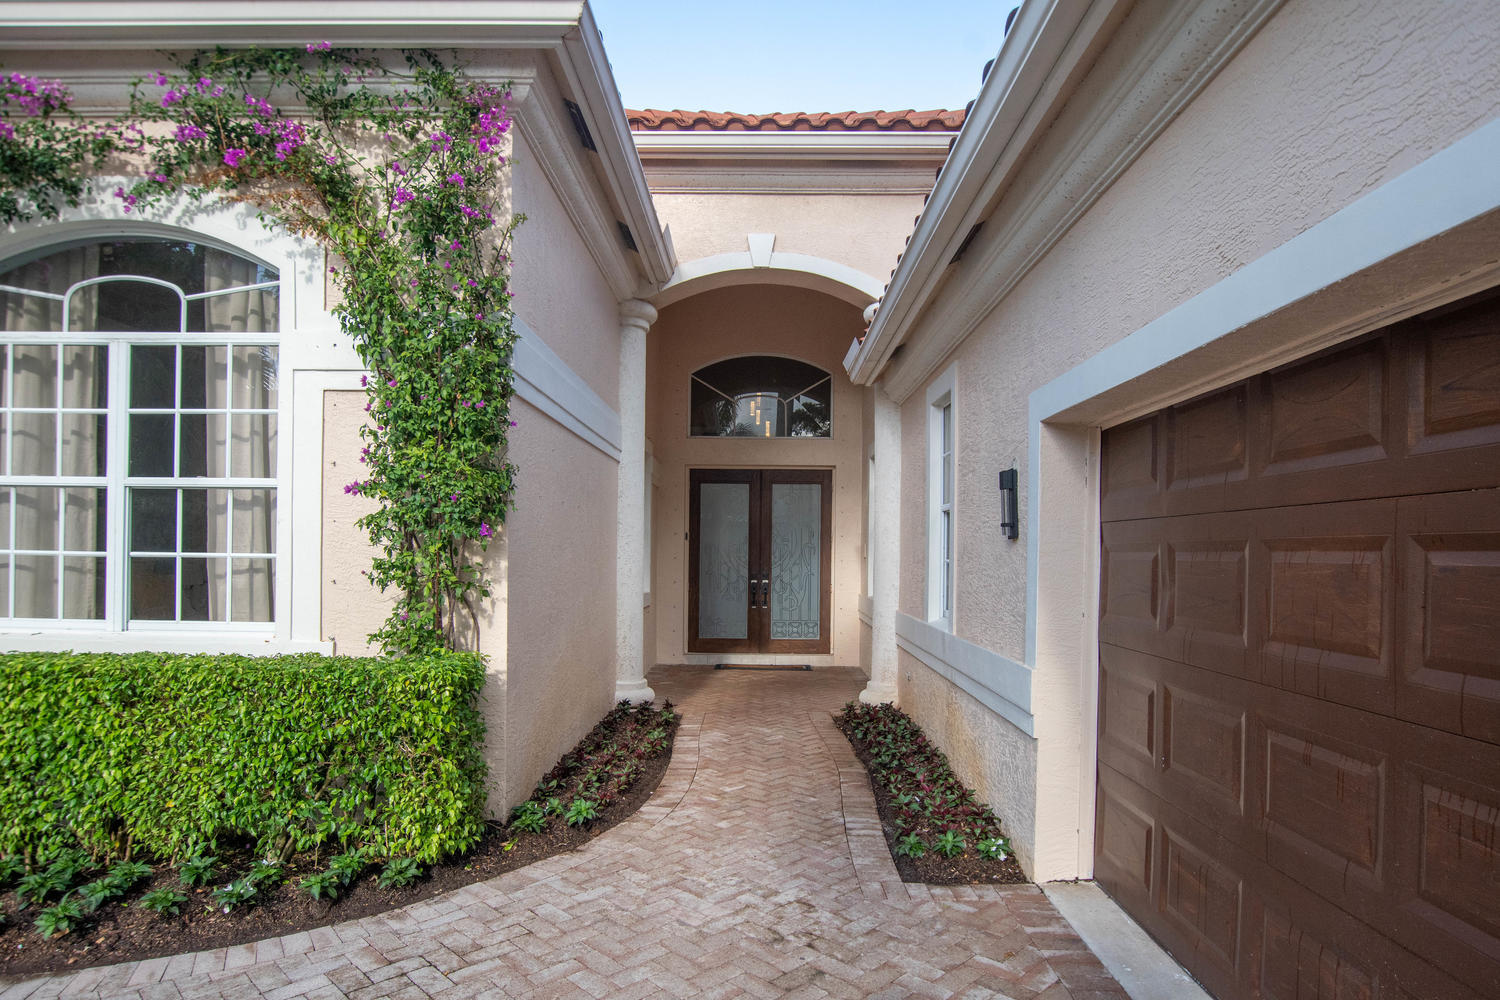 14325 Stroller Way, Wellington, Florida 33414, 4 Bedrooms Bedrooms, ,3.1 BathroomsBathrooms,Single Family,For Rent,PALM BEACH POLO,Stroller,RX-10573741